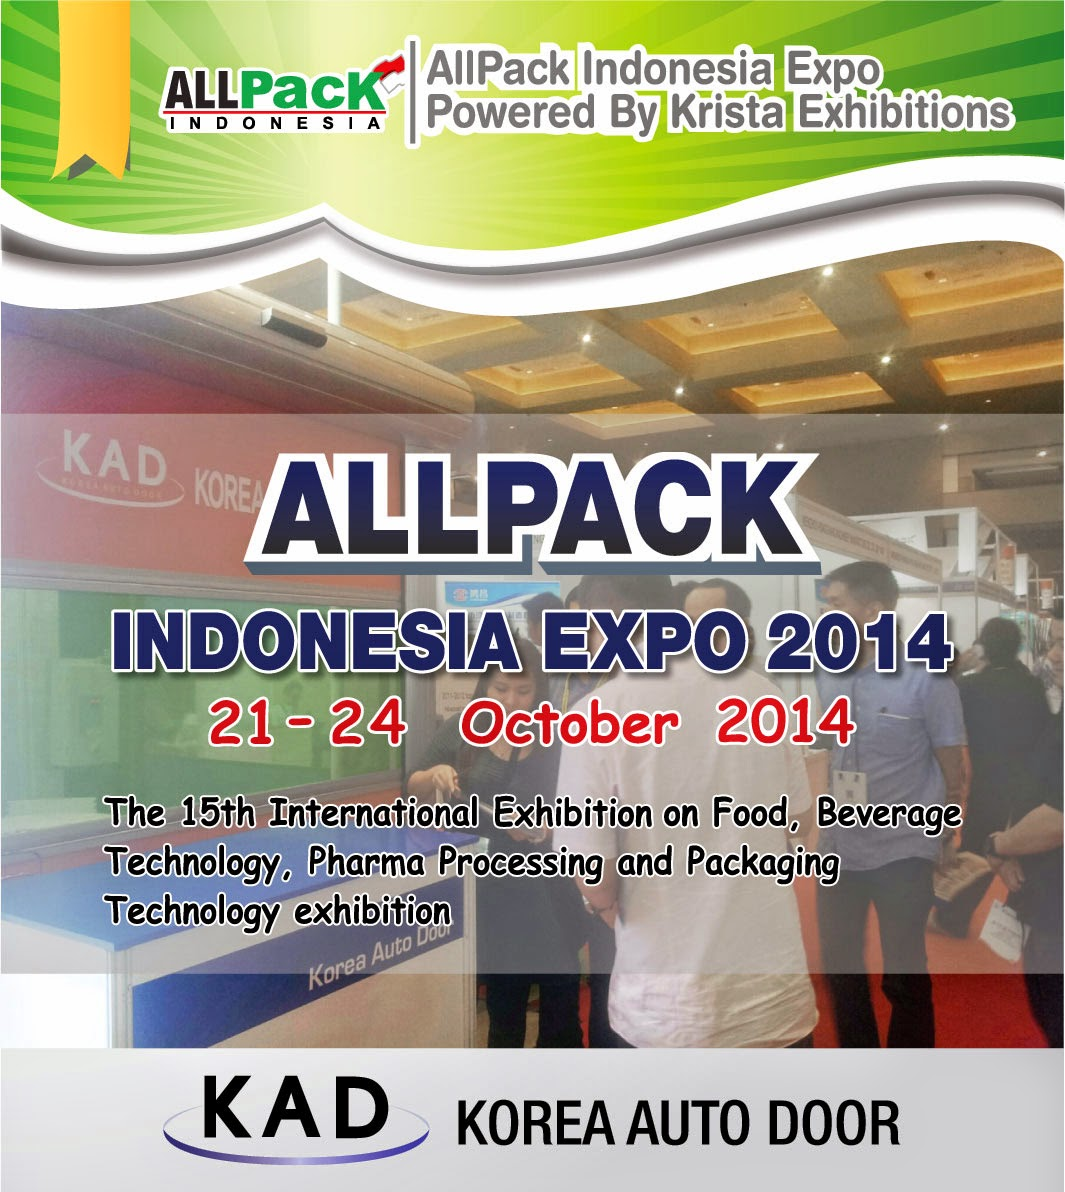 pamphlet of allpack indonesia